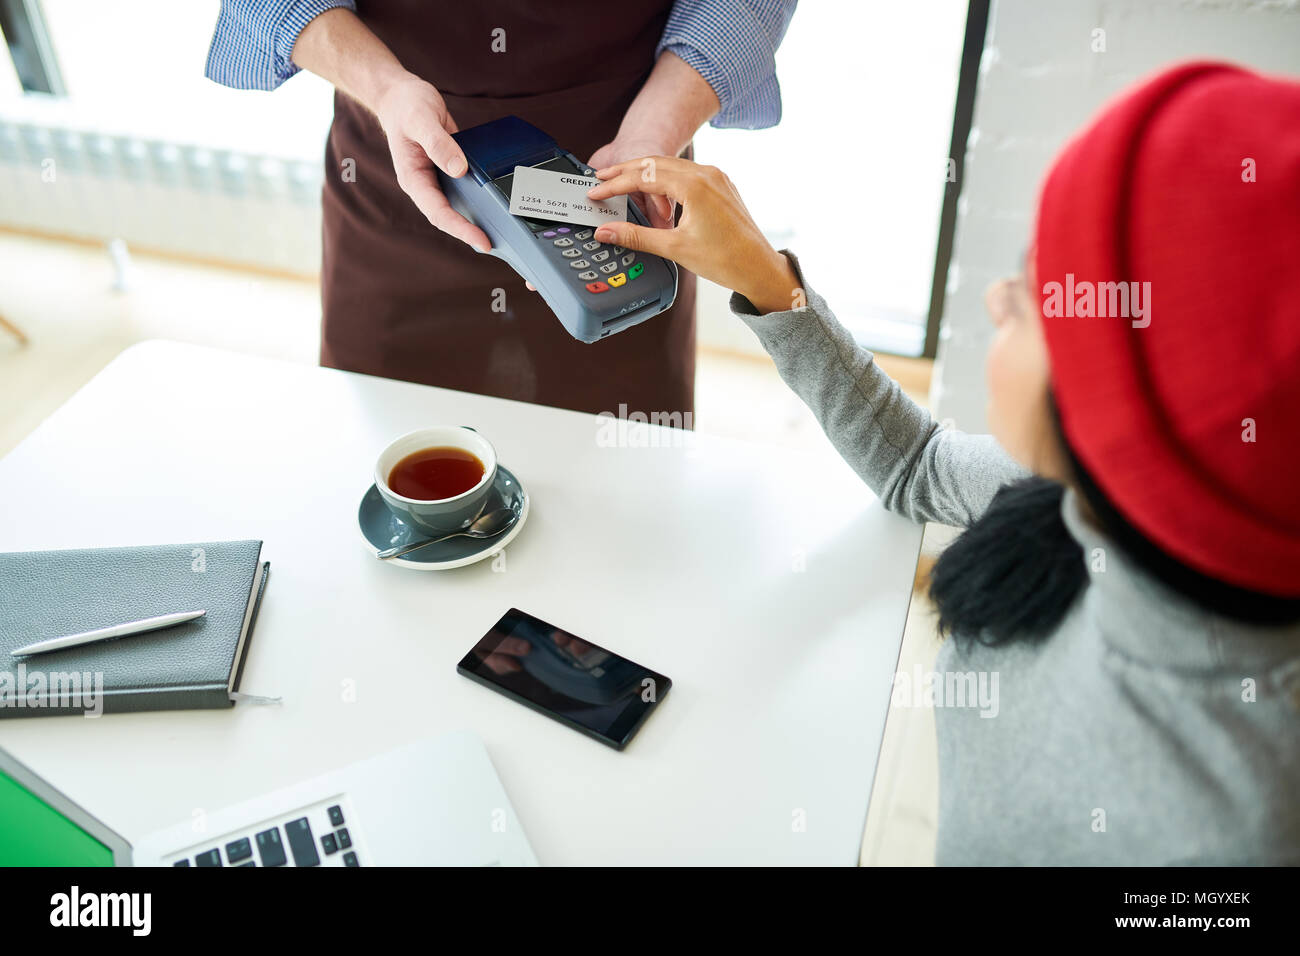 Young Woman Paying via NFC in Cafe Stock Photo